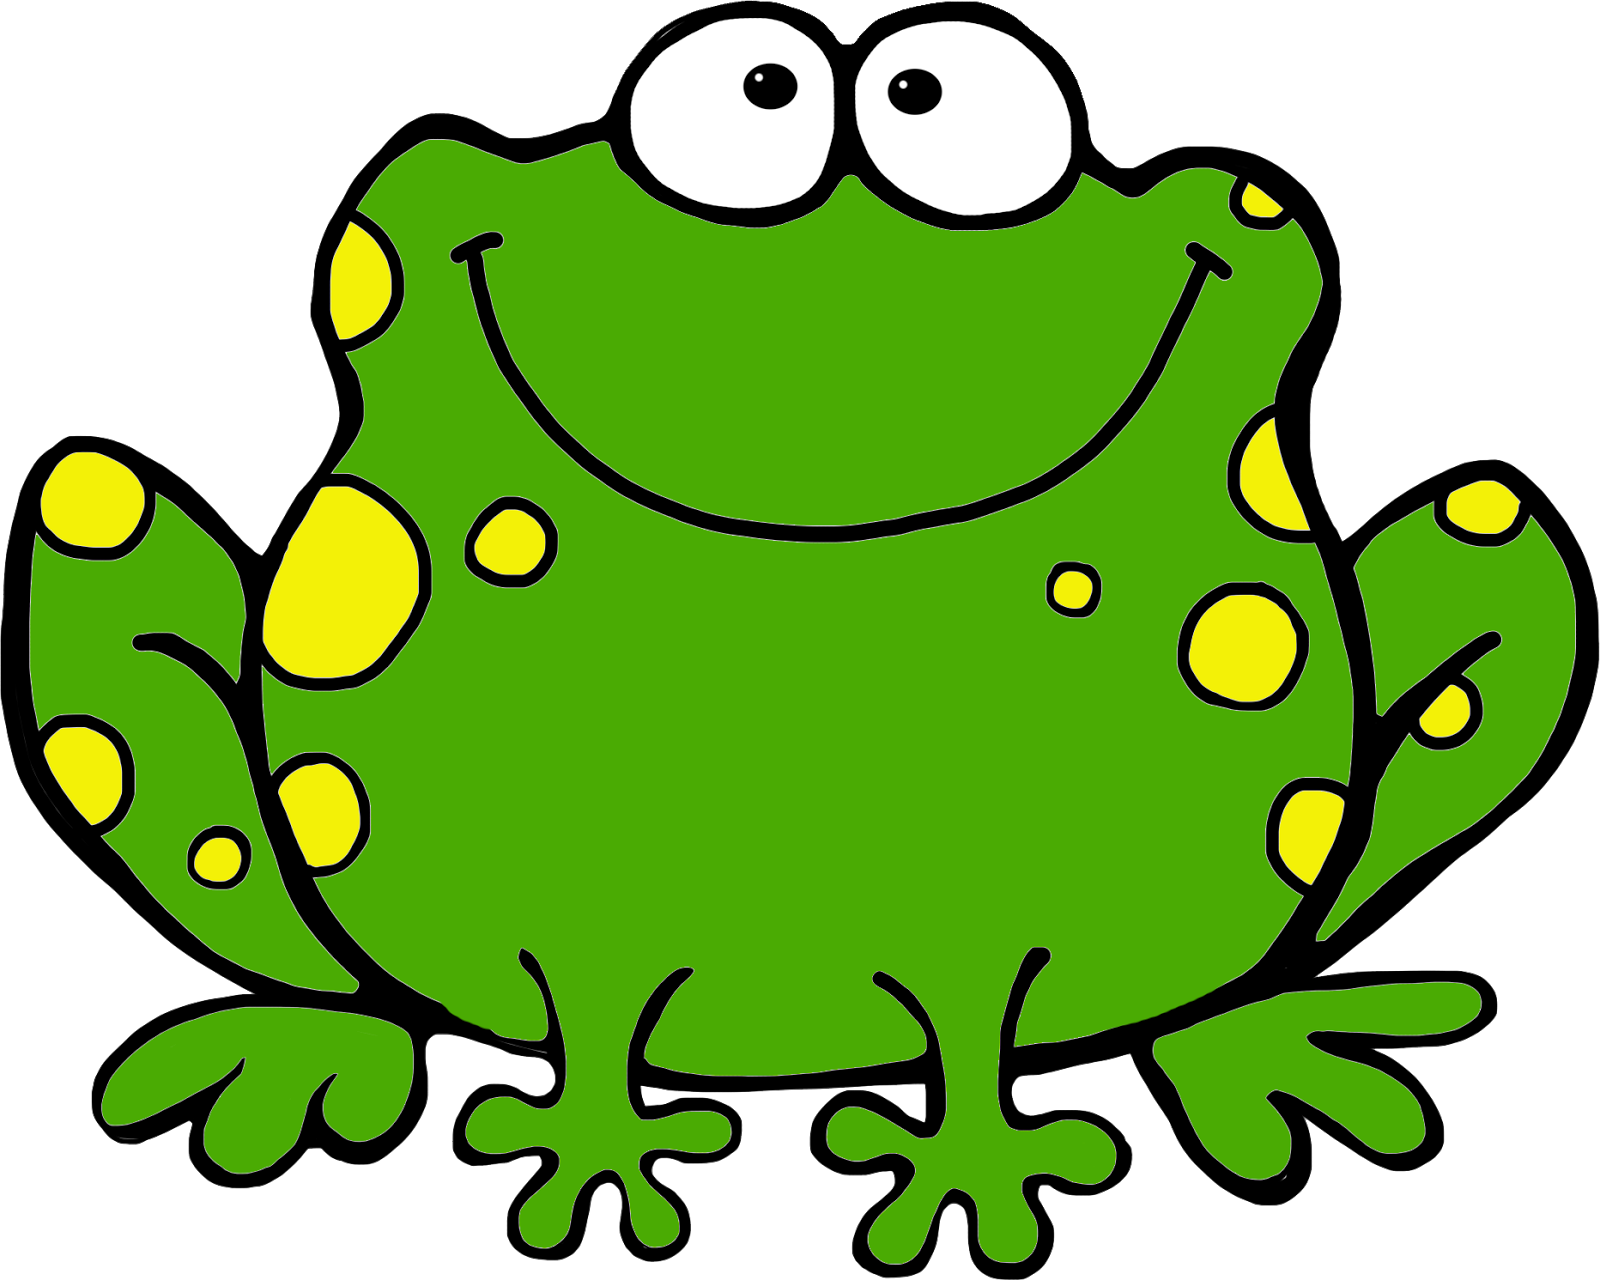 Frog clipart kid. Green